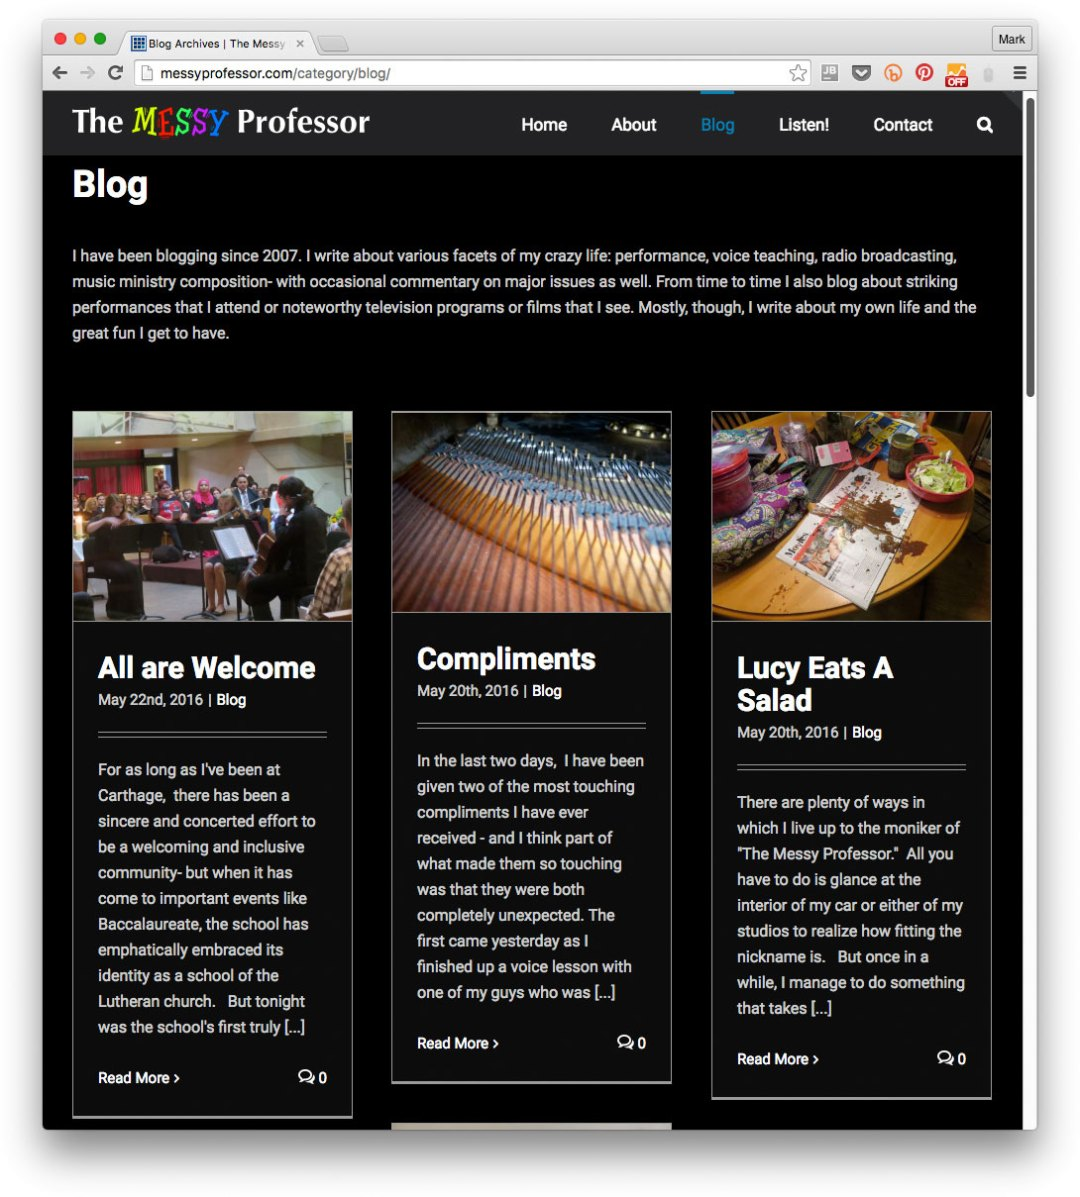 Website example: Gregory Berg's blog The Messy Professor